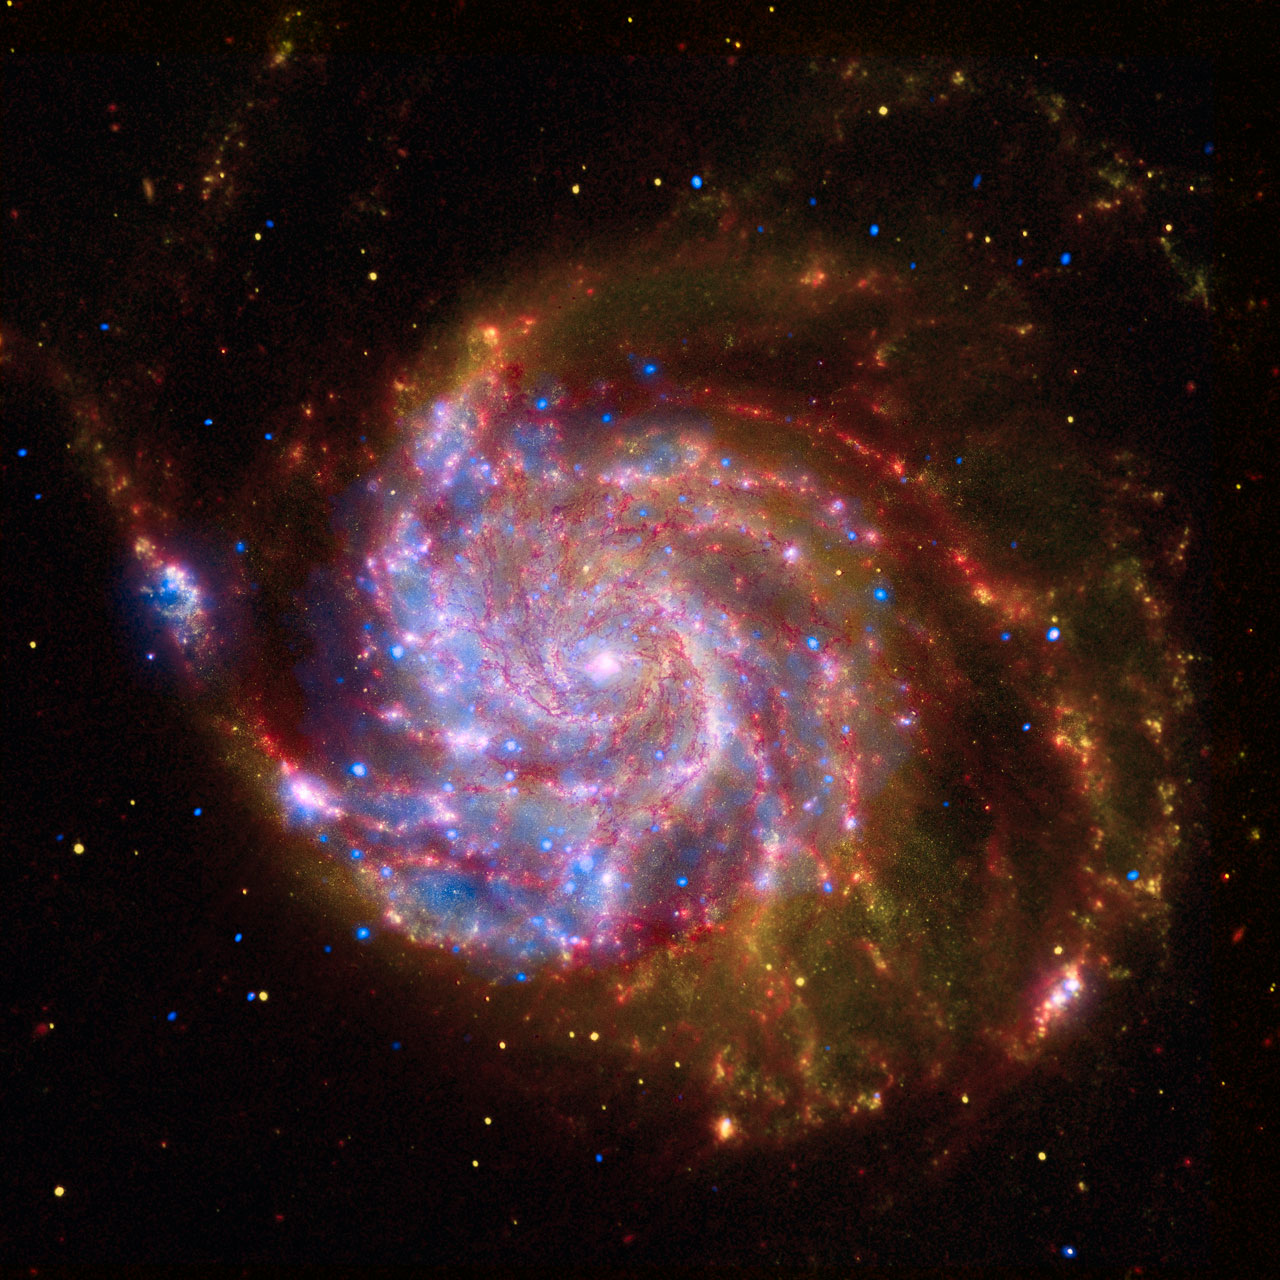 Spitzer-Hubble-Chandra Composite of M101